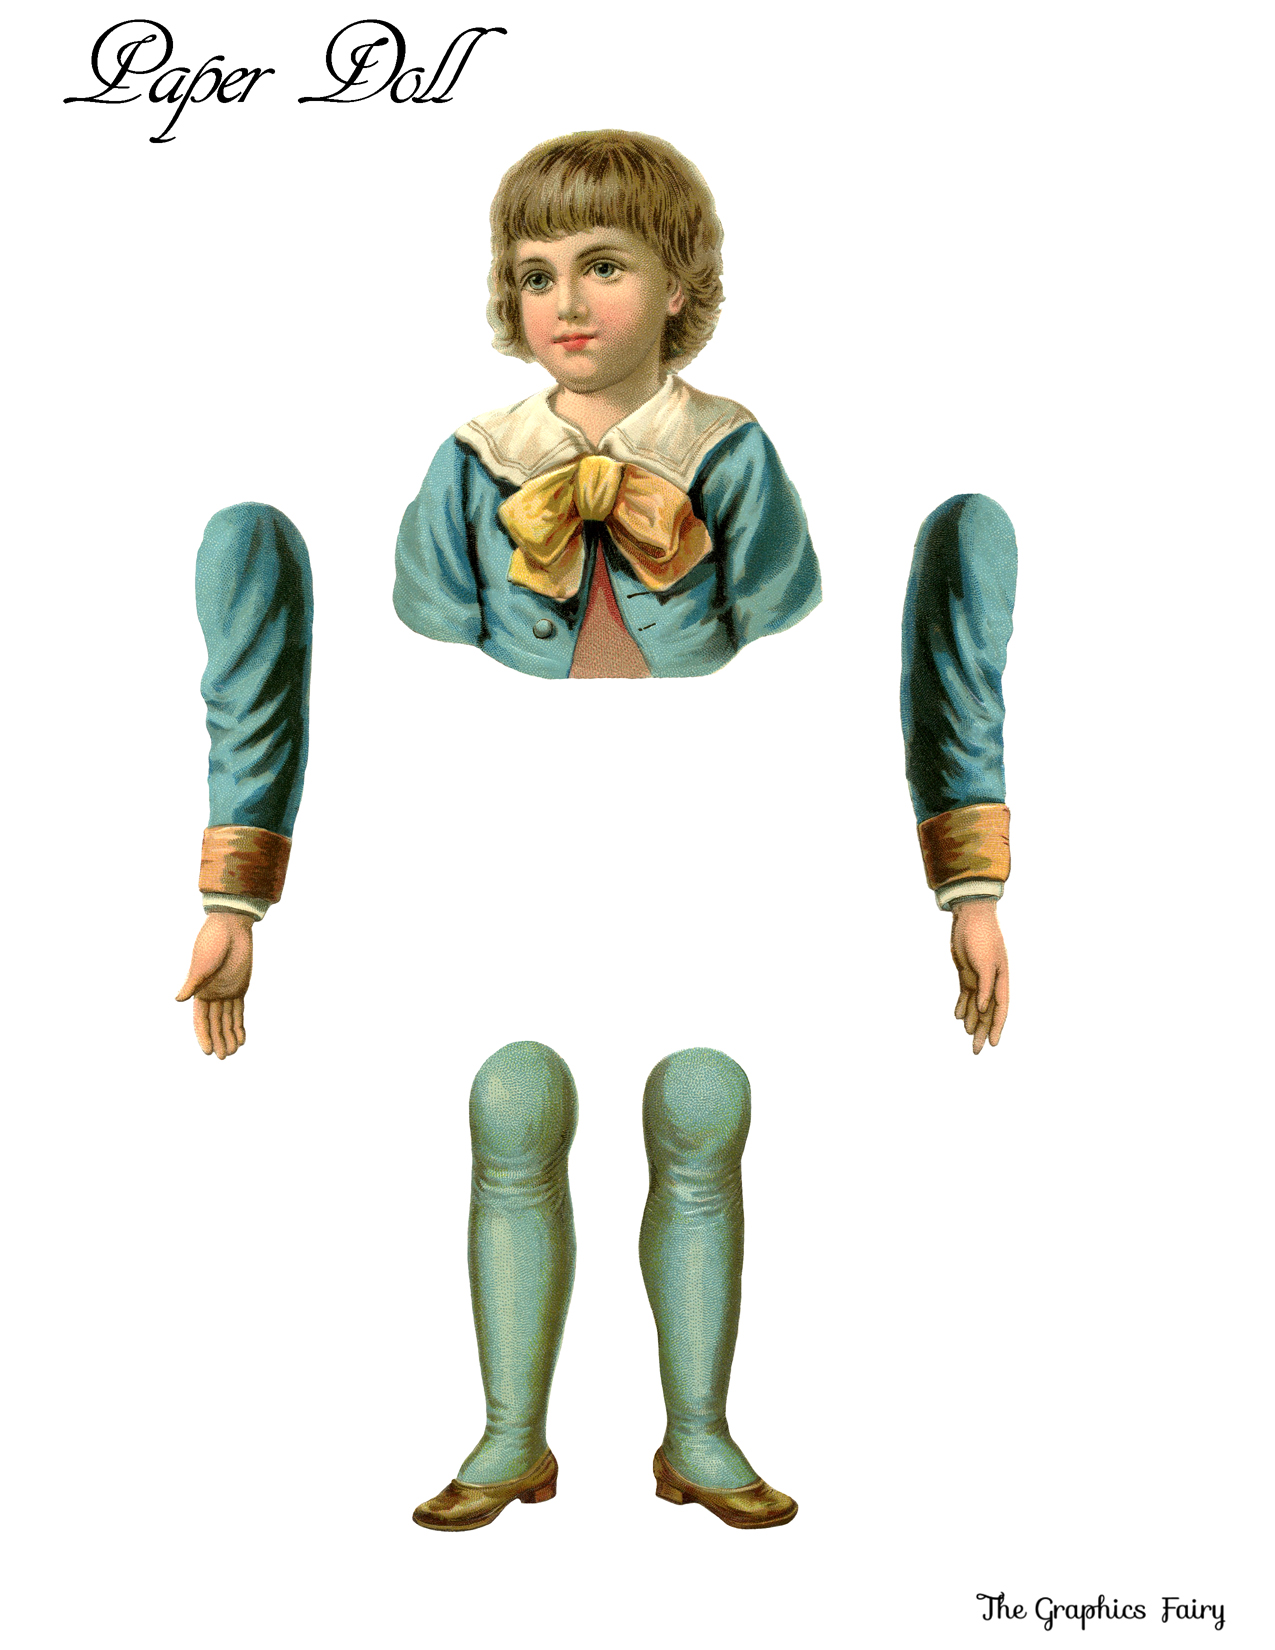 image relating to Printable Vintage Paper Dolls named Basic Printable Paper Doll Boy - The Graphics Fairy